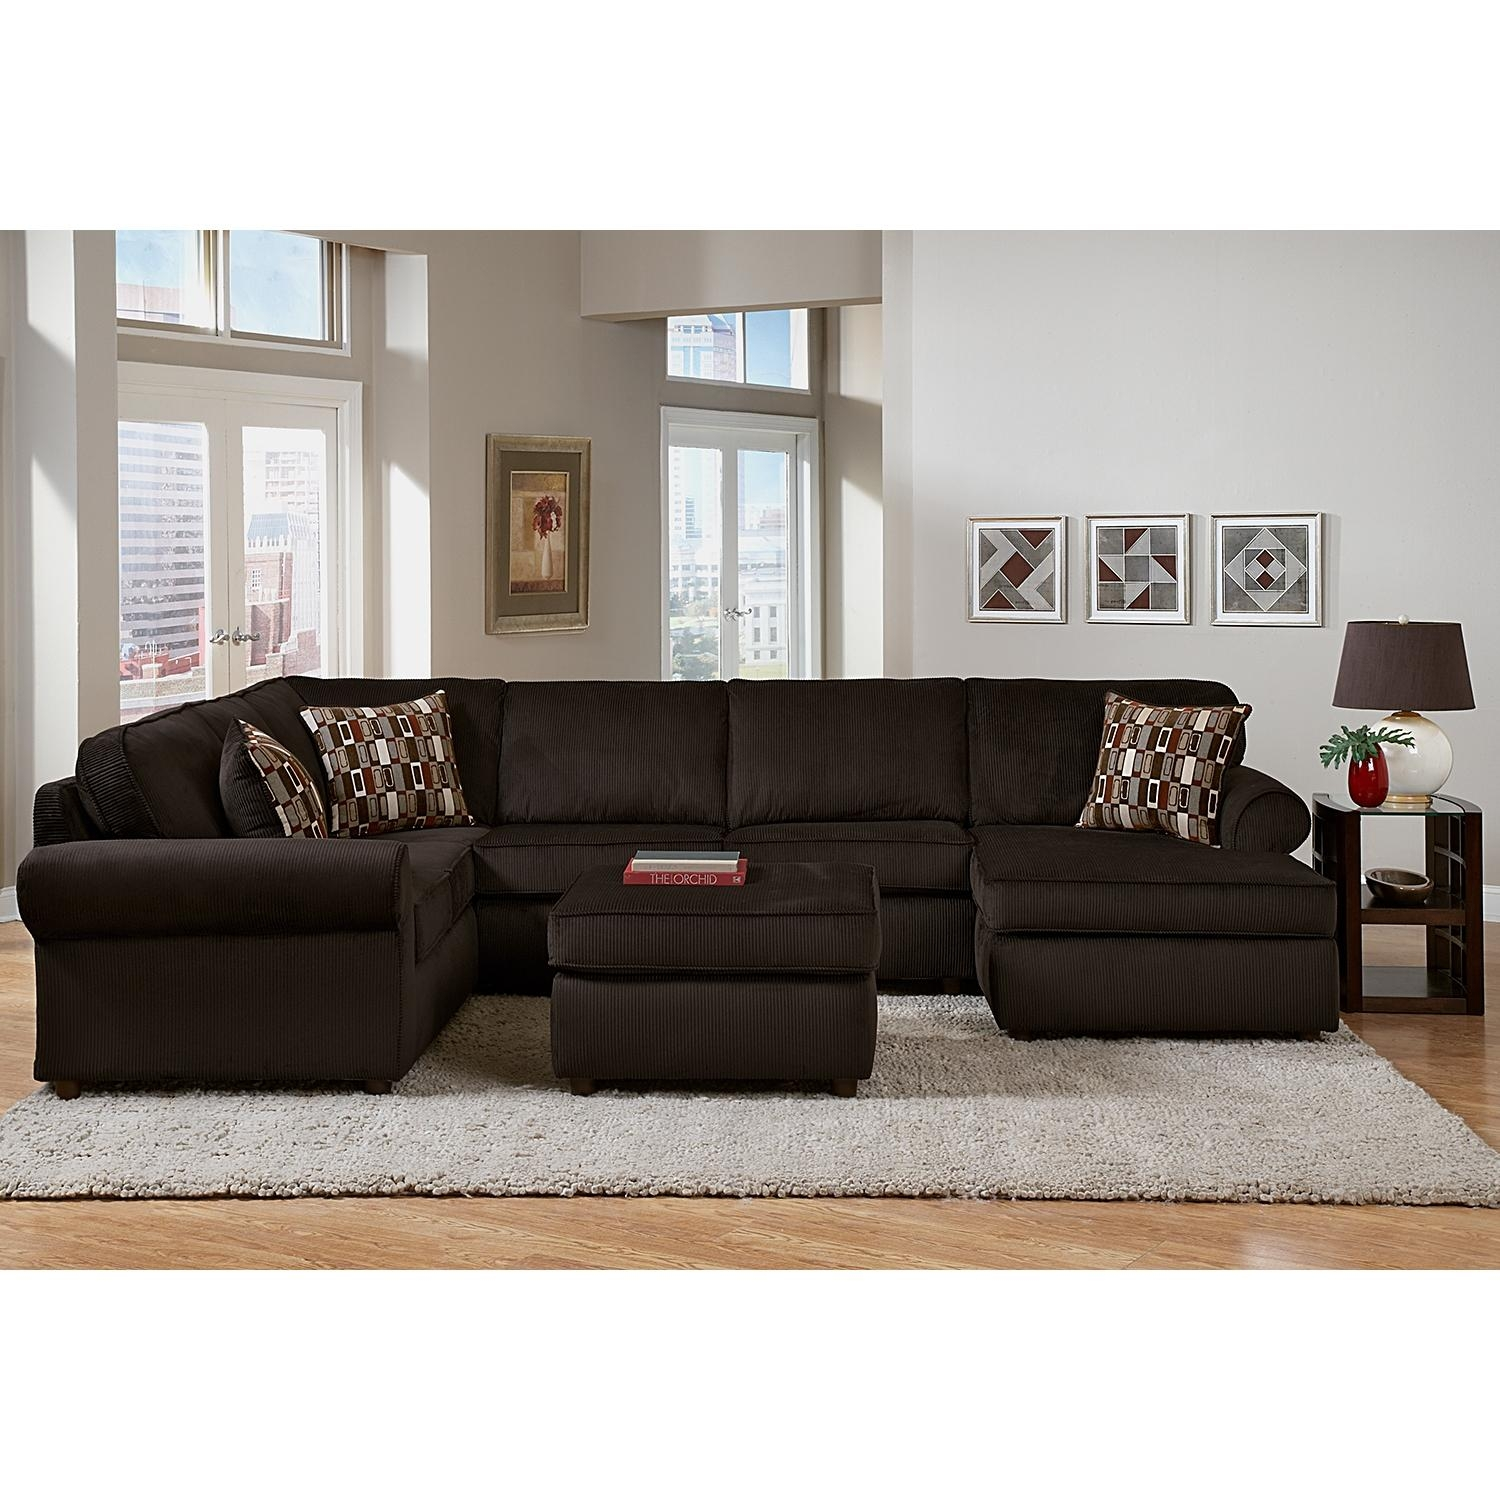 Decor: Artificial Classic Corduroy Sectional Sofa For Unique In Colored Sectionals (View 12 of 15)